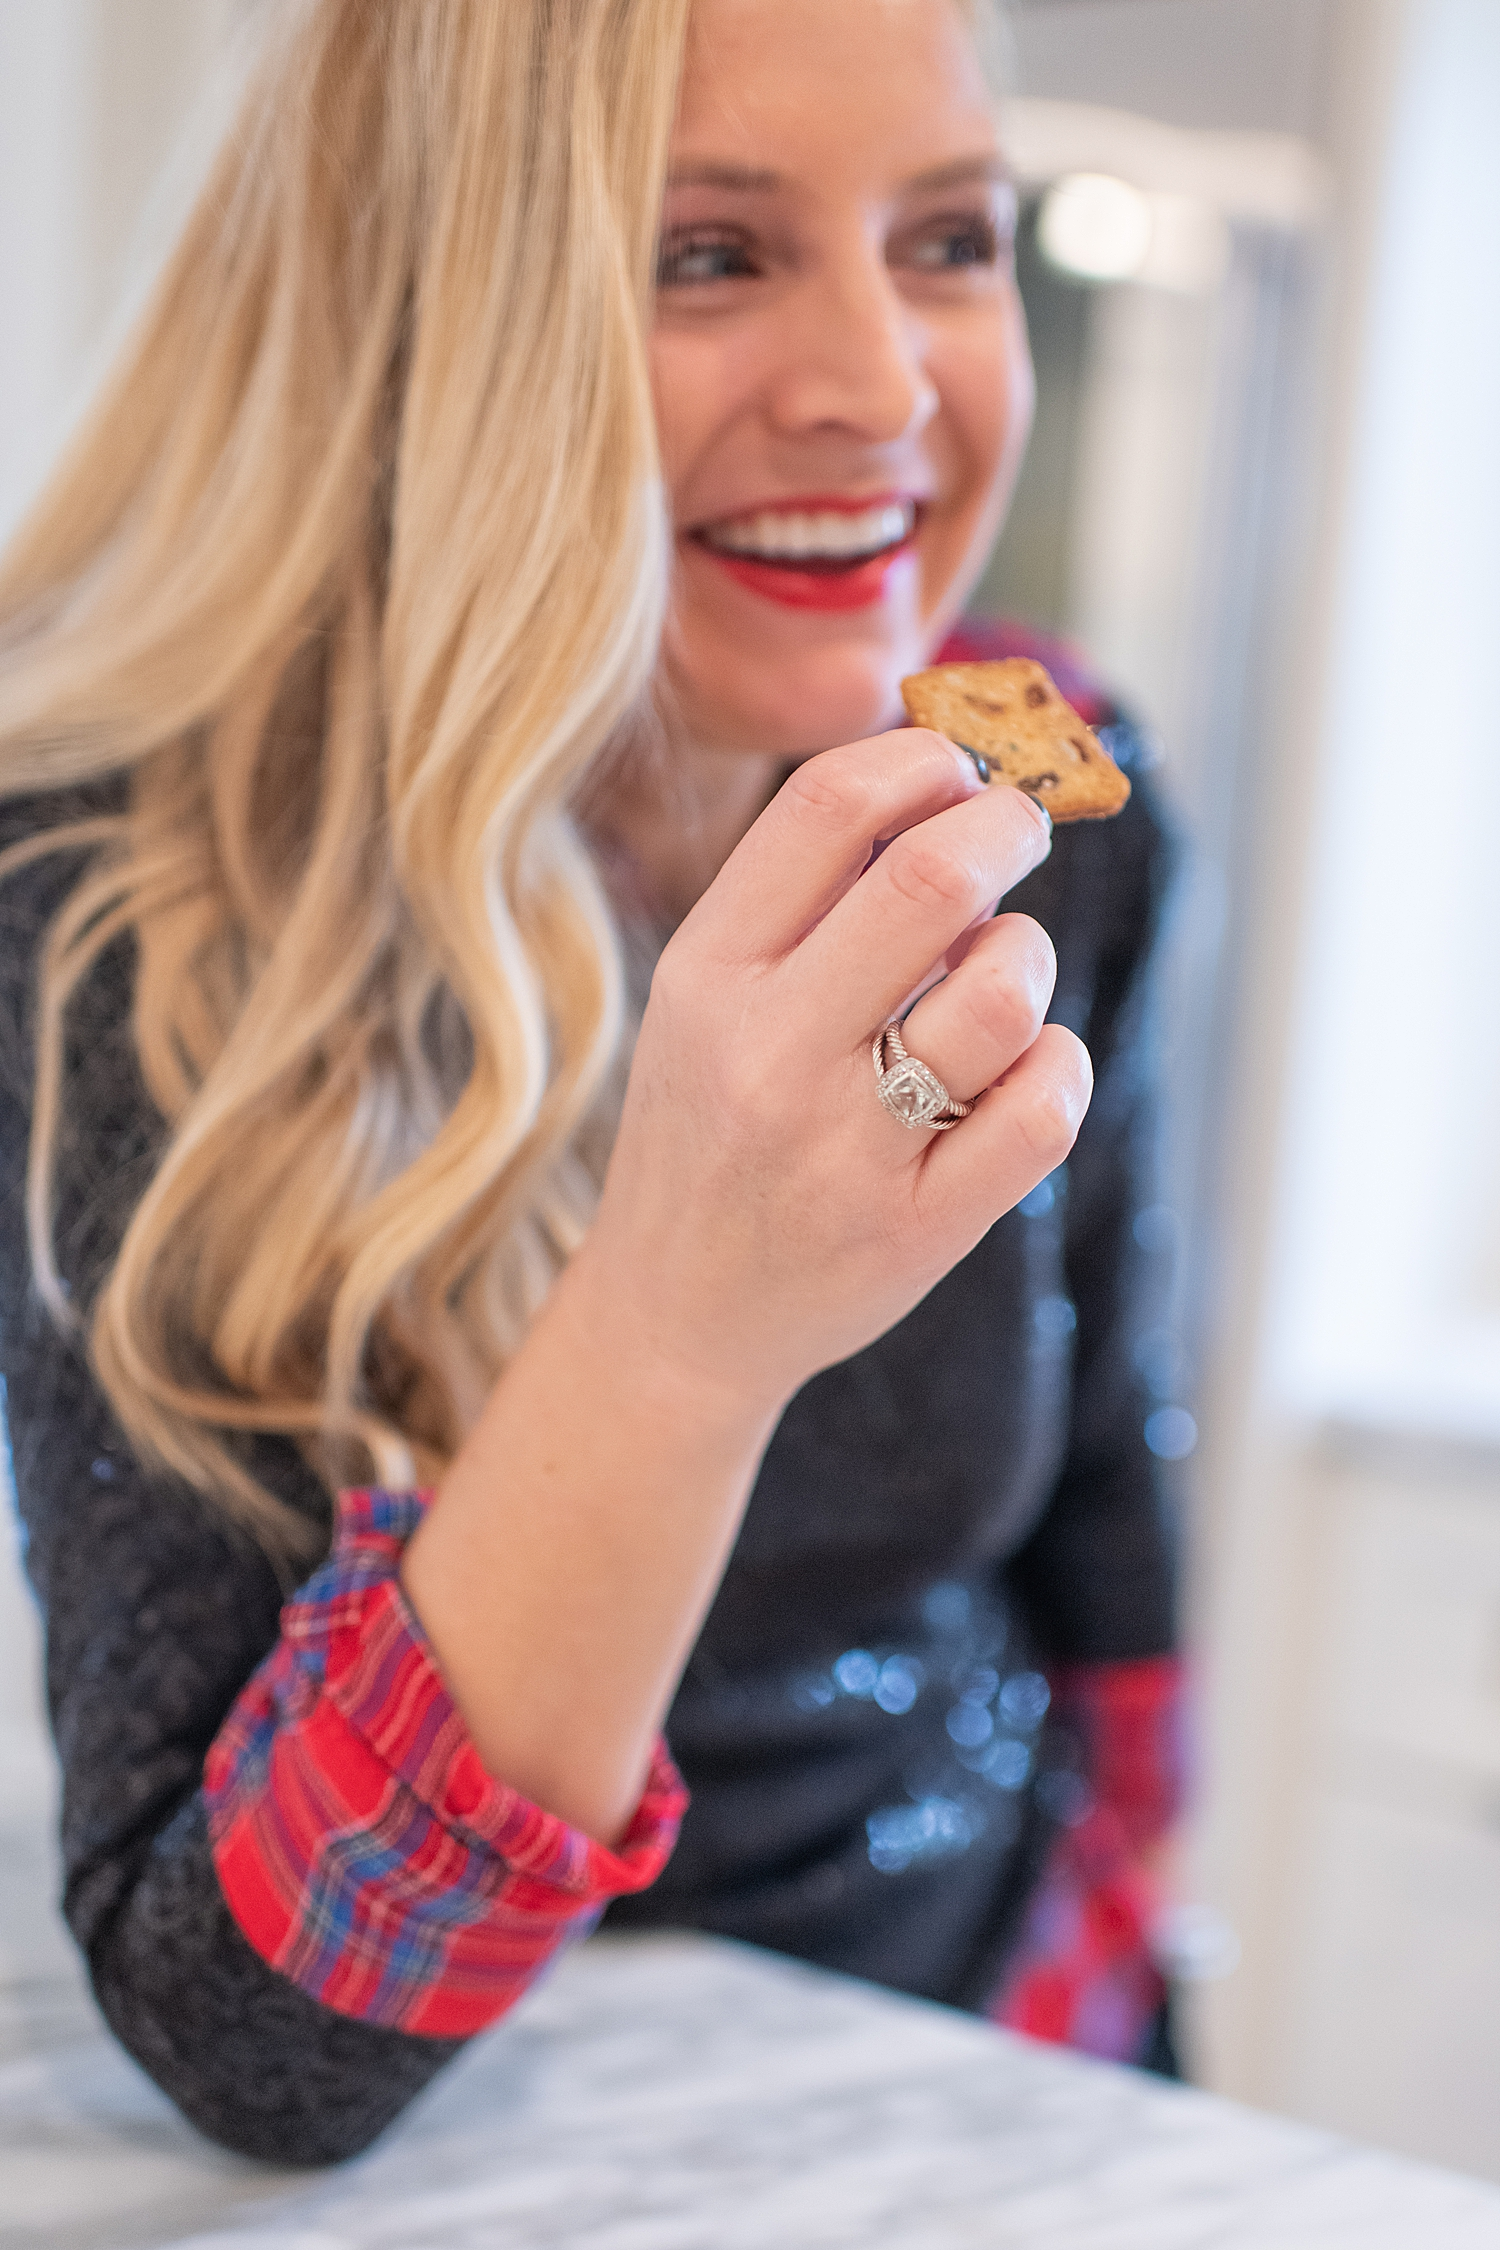 Top Houston life and style blogger, Fancy Ashley, features her tips to prepare the perfect Charcuterie Tray for the Holidays: image of a woman holding eating a cracker